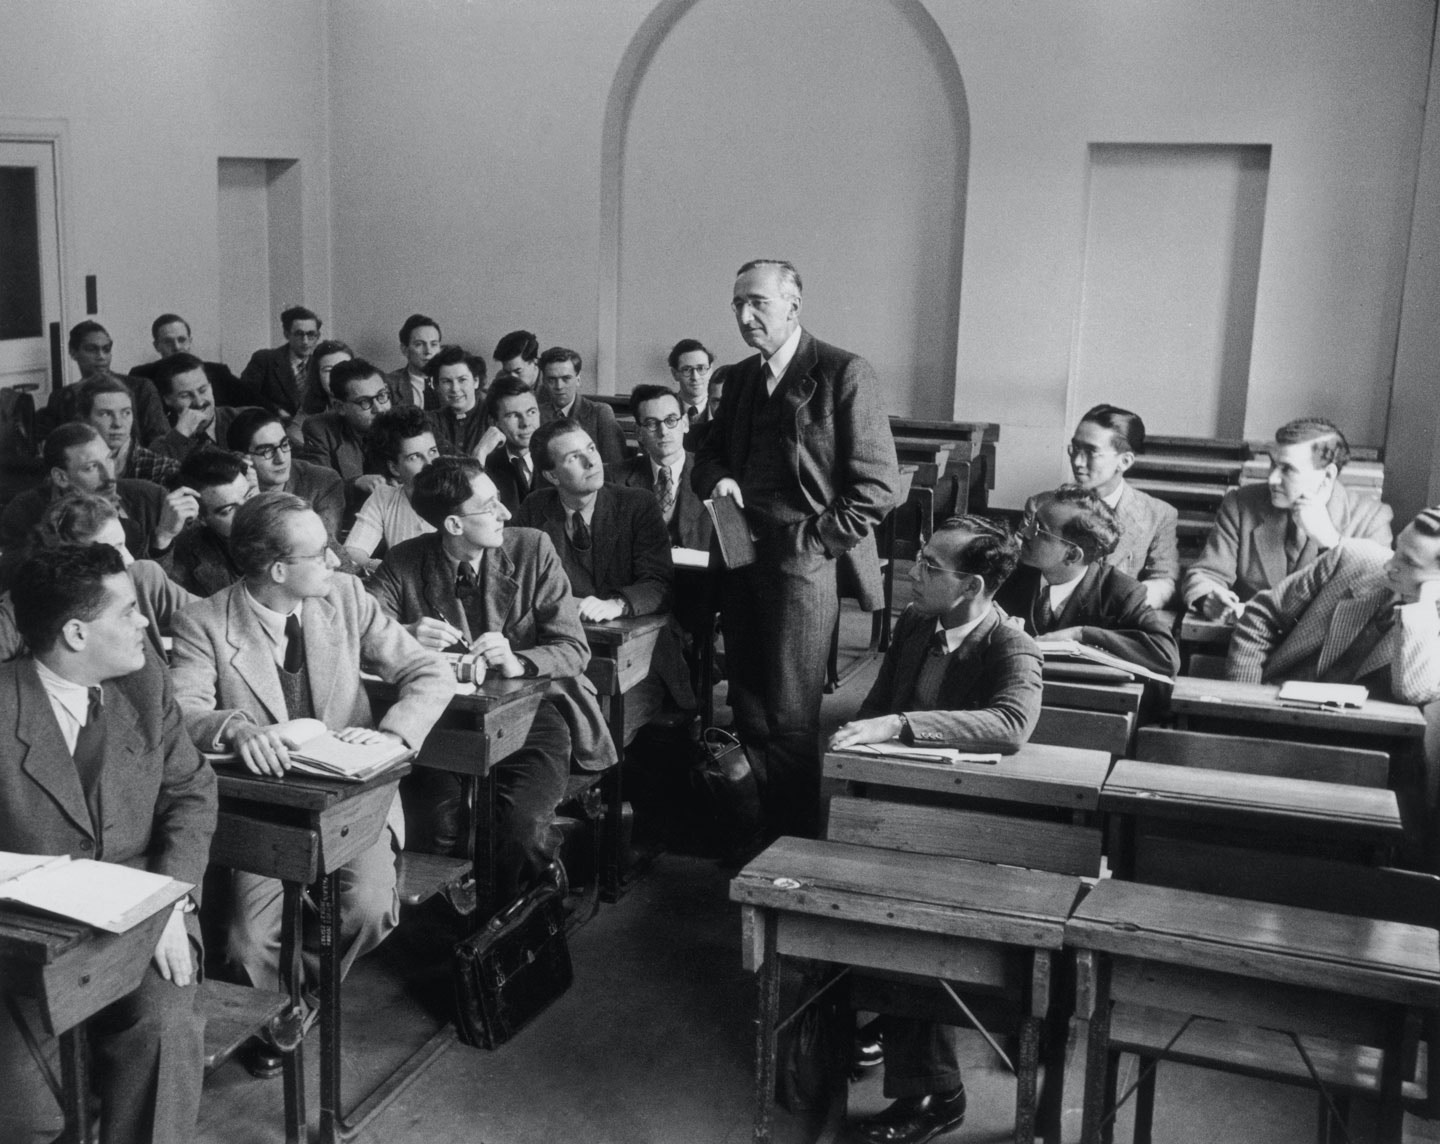 Austrian-British economist and political philosopher Friedrich Hayek (1899 - 1992) with a class of students at the London School of Economics, 1948. (Photo by Paul Popper/Popperfoto/Getty Images)